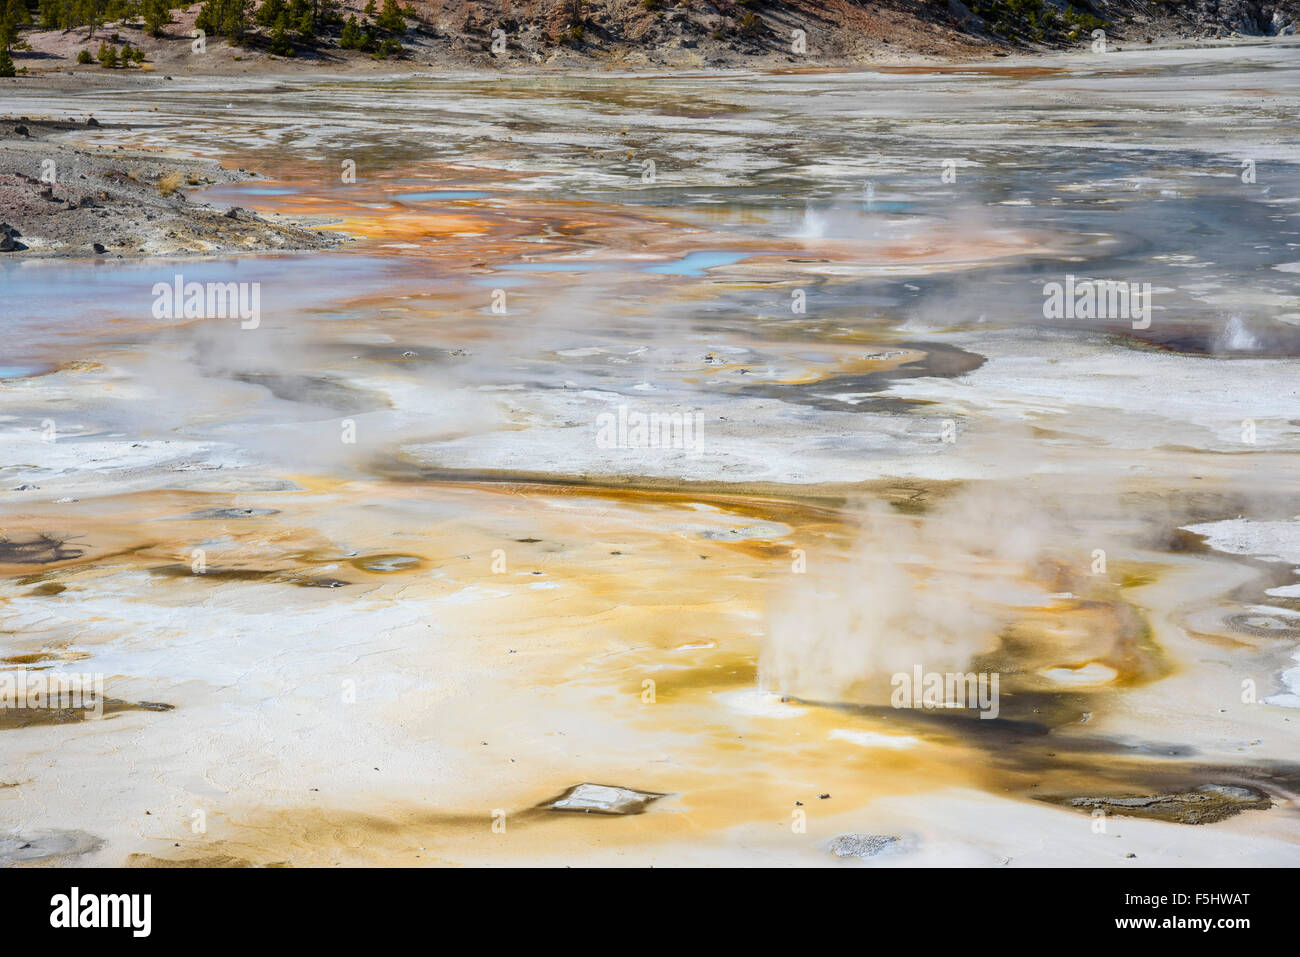 Porcelain Springs, Norris Geyser Basin, Yellowstone National Park, Wyoming, USA - Stock Image